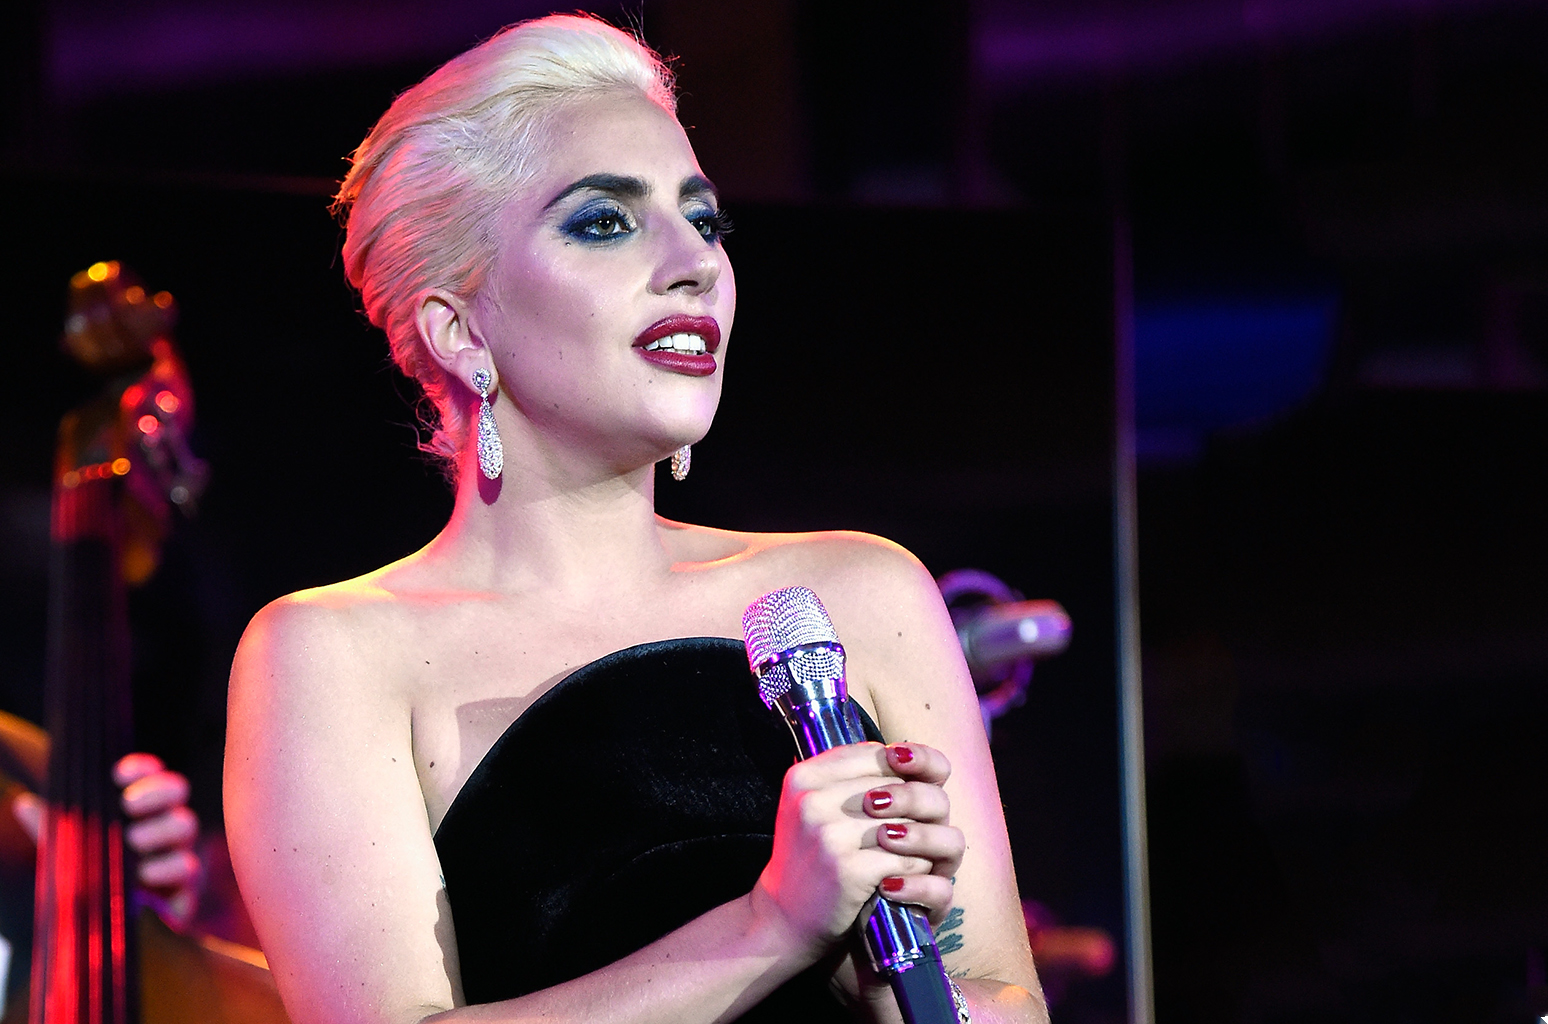 NEW YORK, NY - AUGUST 03: (EXCLUSIVE COVERAGE)  Lady Gaga performs during a celebration of music legend Tony Bennett's 90th birthday at The Rainbow Room on August 3, 2016 in New York City.  (Photo by Kevin Mazur/Getty Images for RPM)